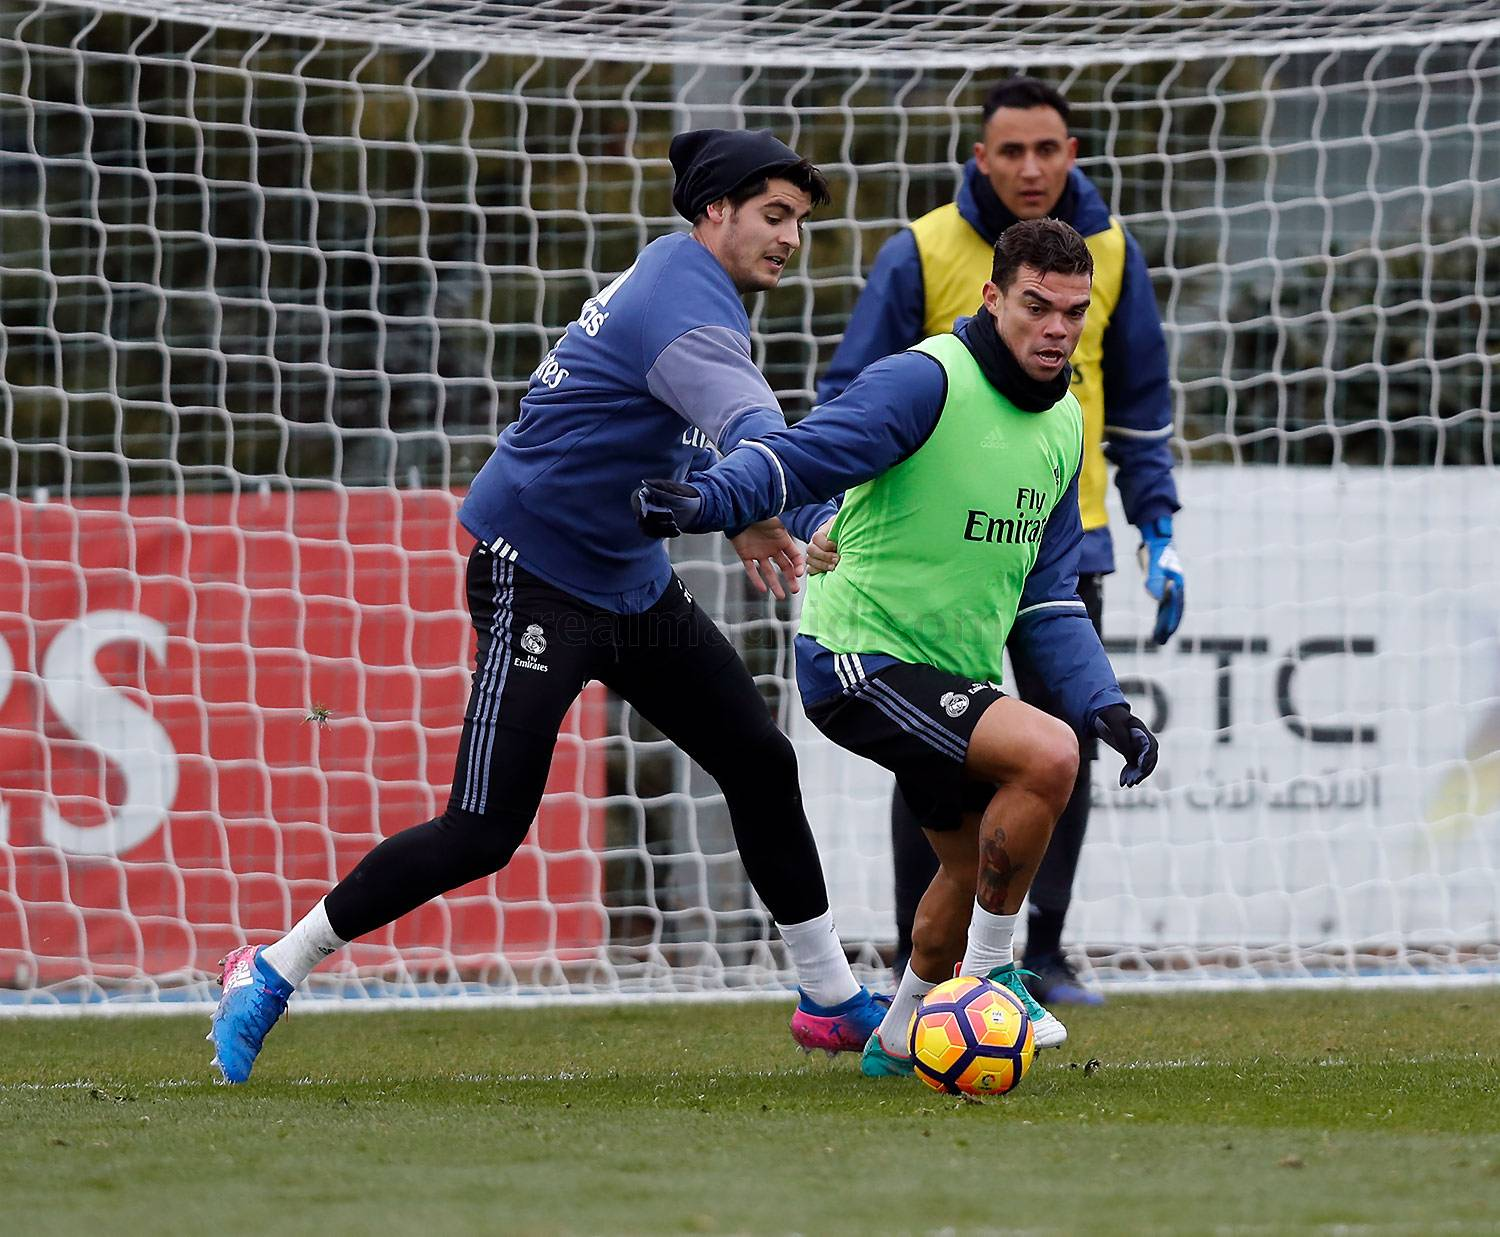 Real Madrid - Entrenamiento del Real Madrid - 10-02-2017